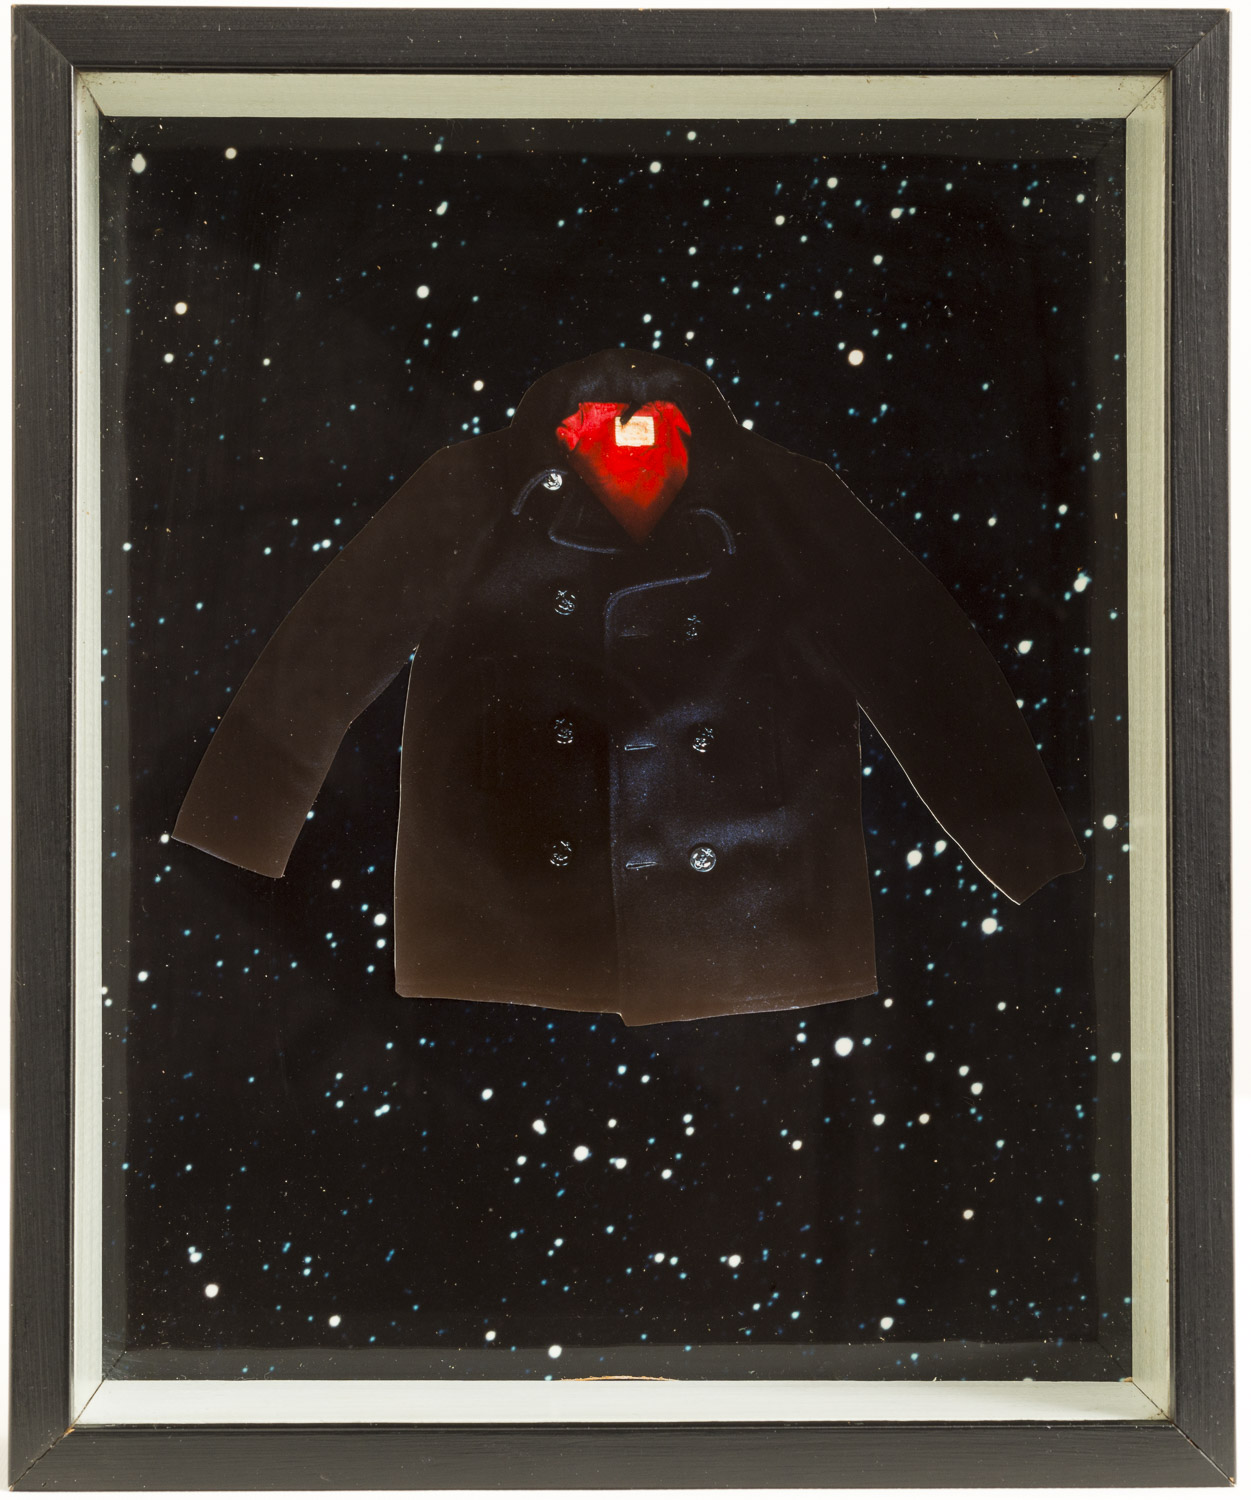 Megan Jenkinson.  Once a Supernova  1982. From  The Coats of Deception  series.  Cibachrome collage